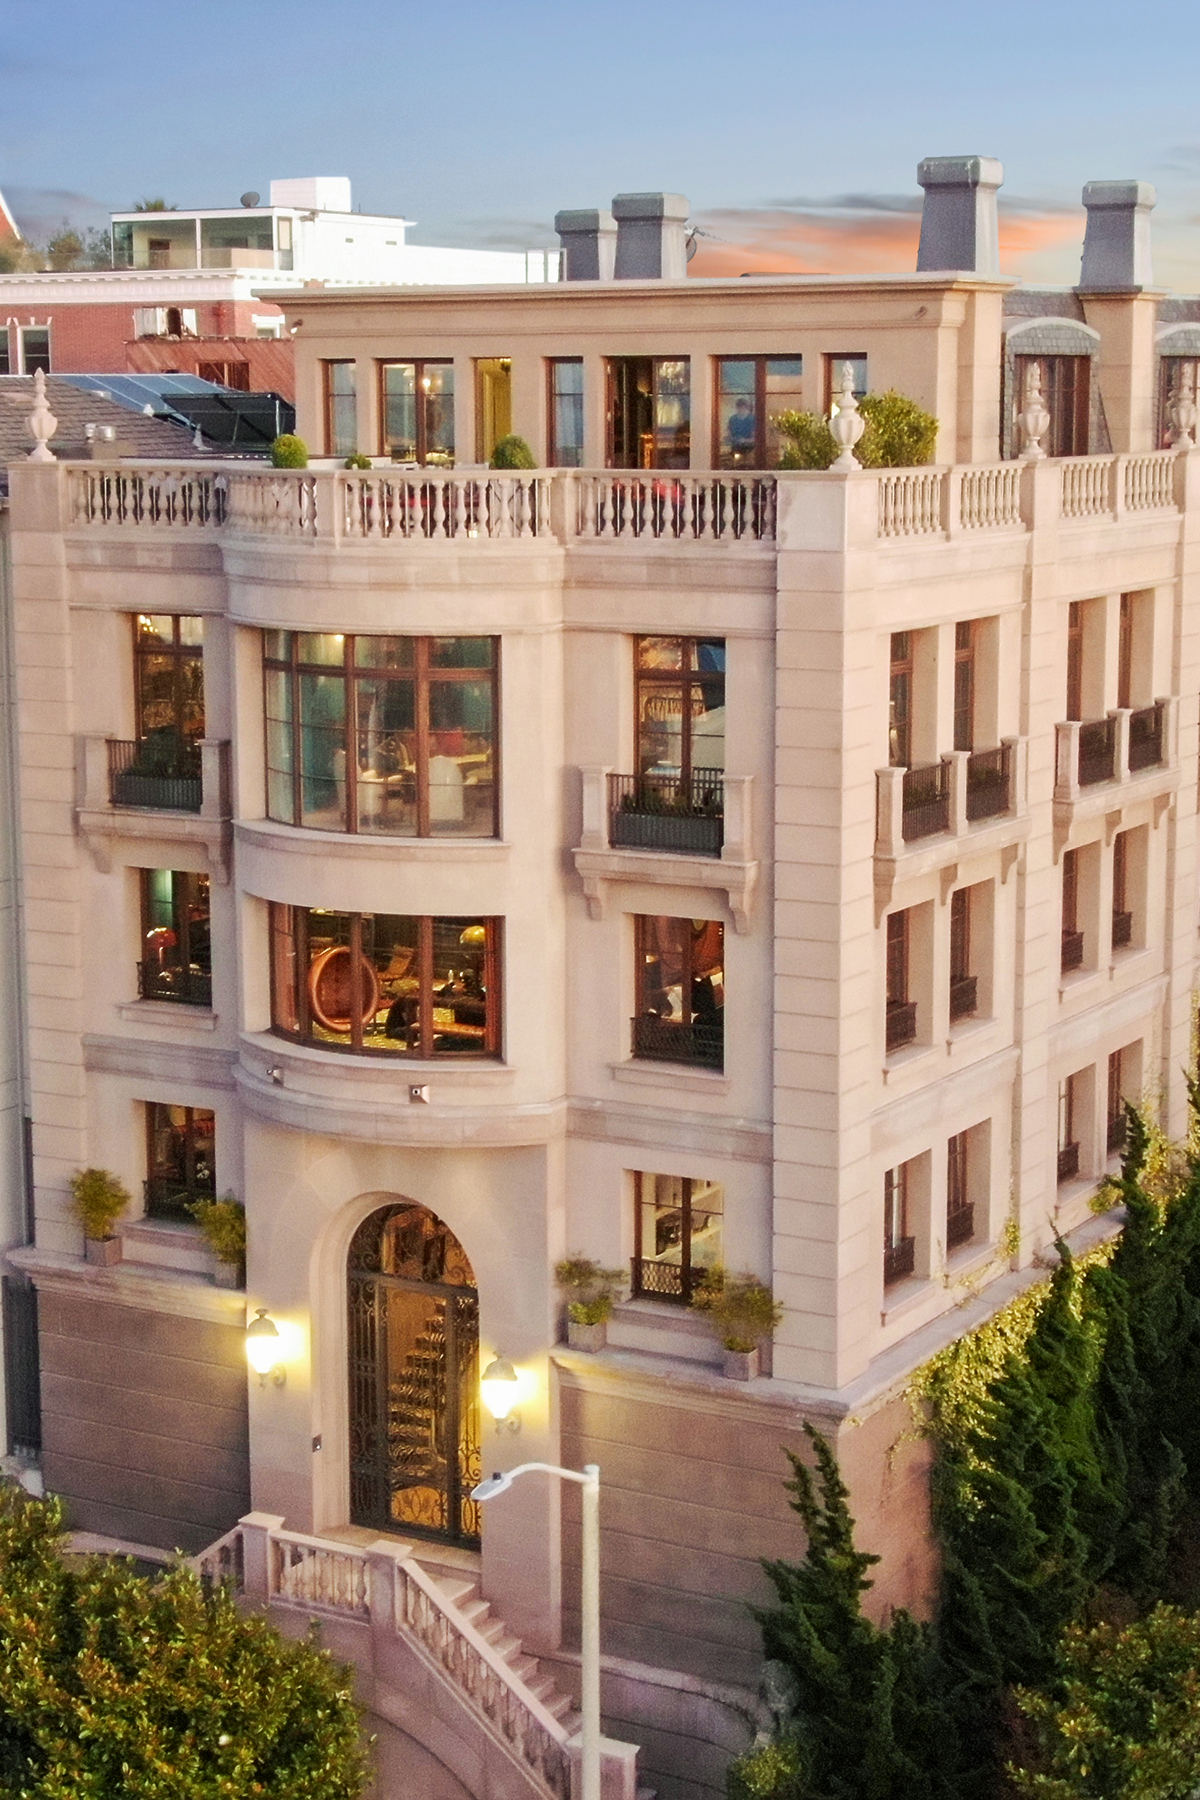 Single Family Homes for Sale at Bay View Mansion On Legendary Gold Coast 2799 Broadway San Francisco, California 94115 United States